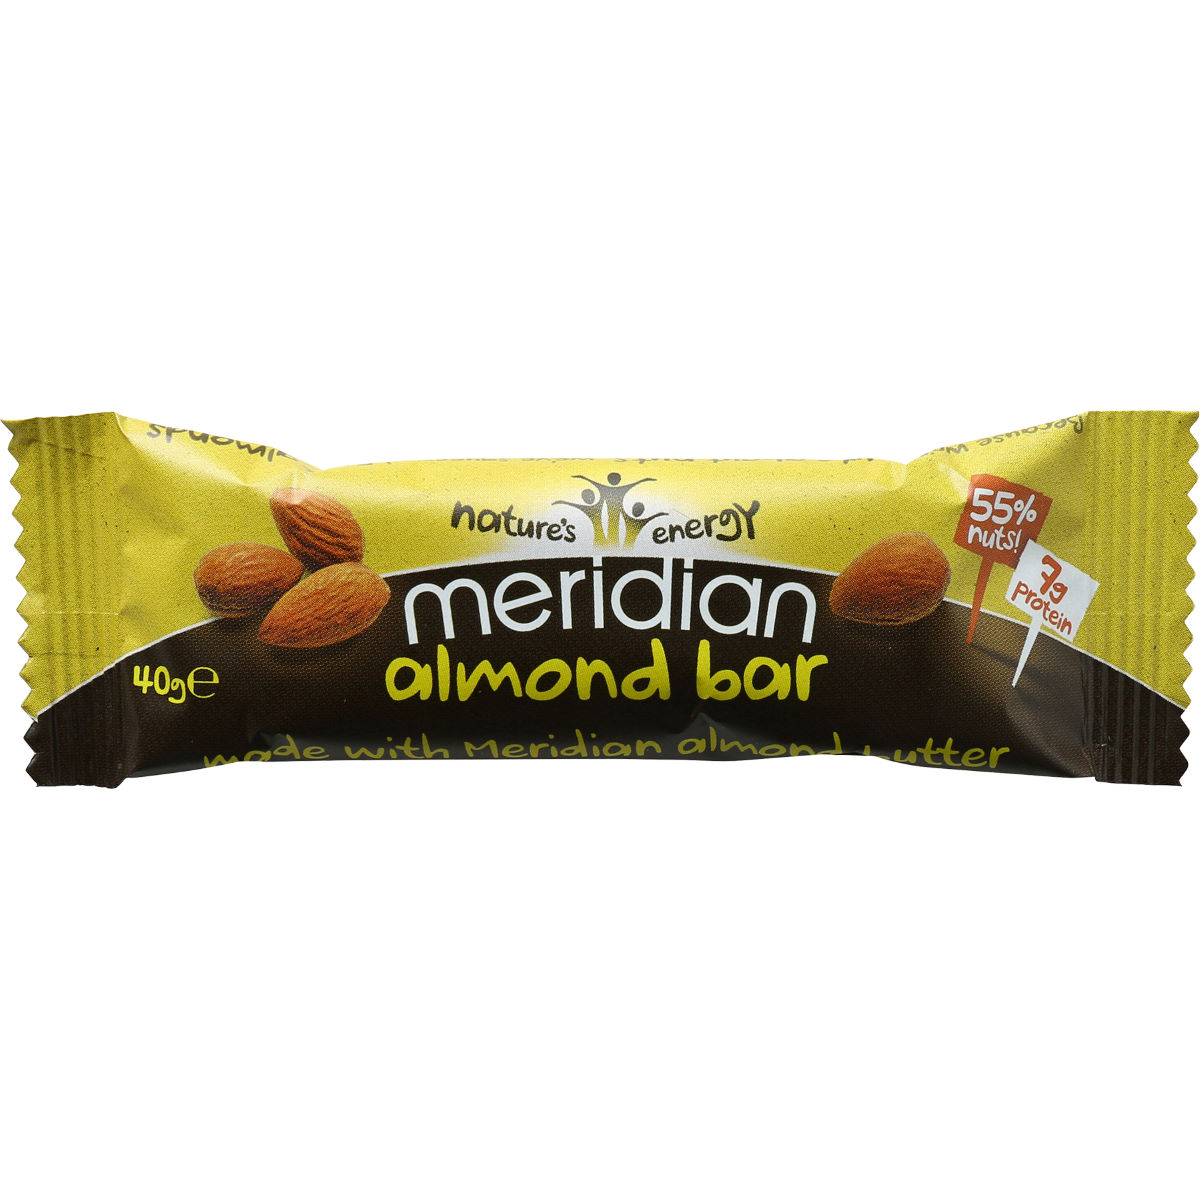 Image of Barre Meridian Amandes (18 x 40 g) - 18 x 40g 11-20 Almond | Barres